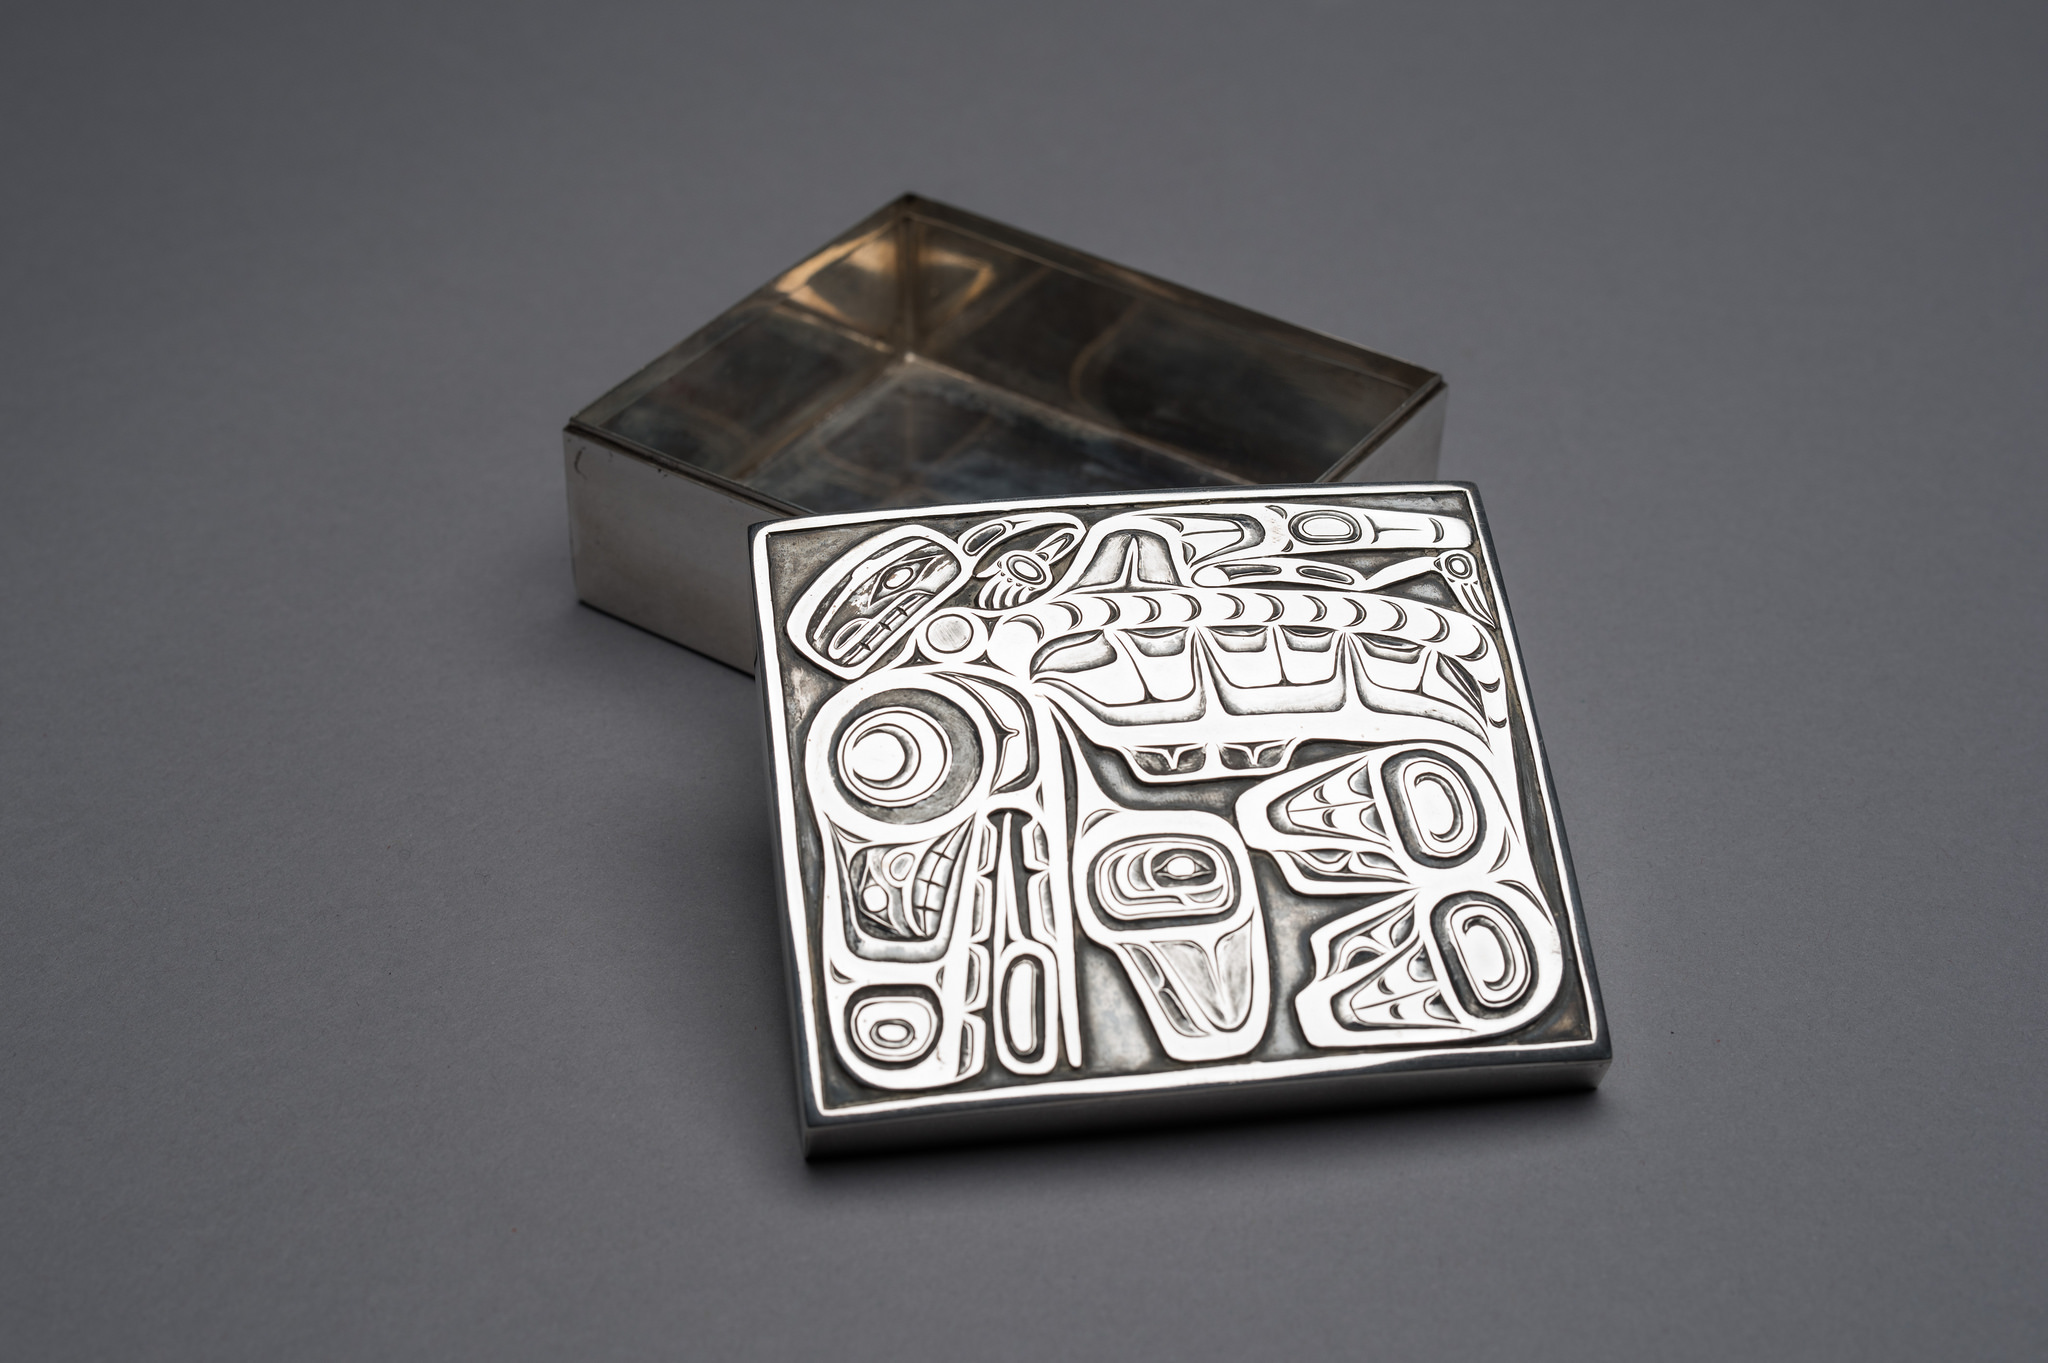 A silver box with a killer-whale motif created by renowned Haida artist Bill Reid circa 1958